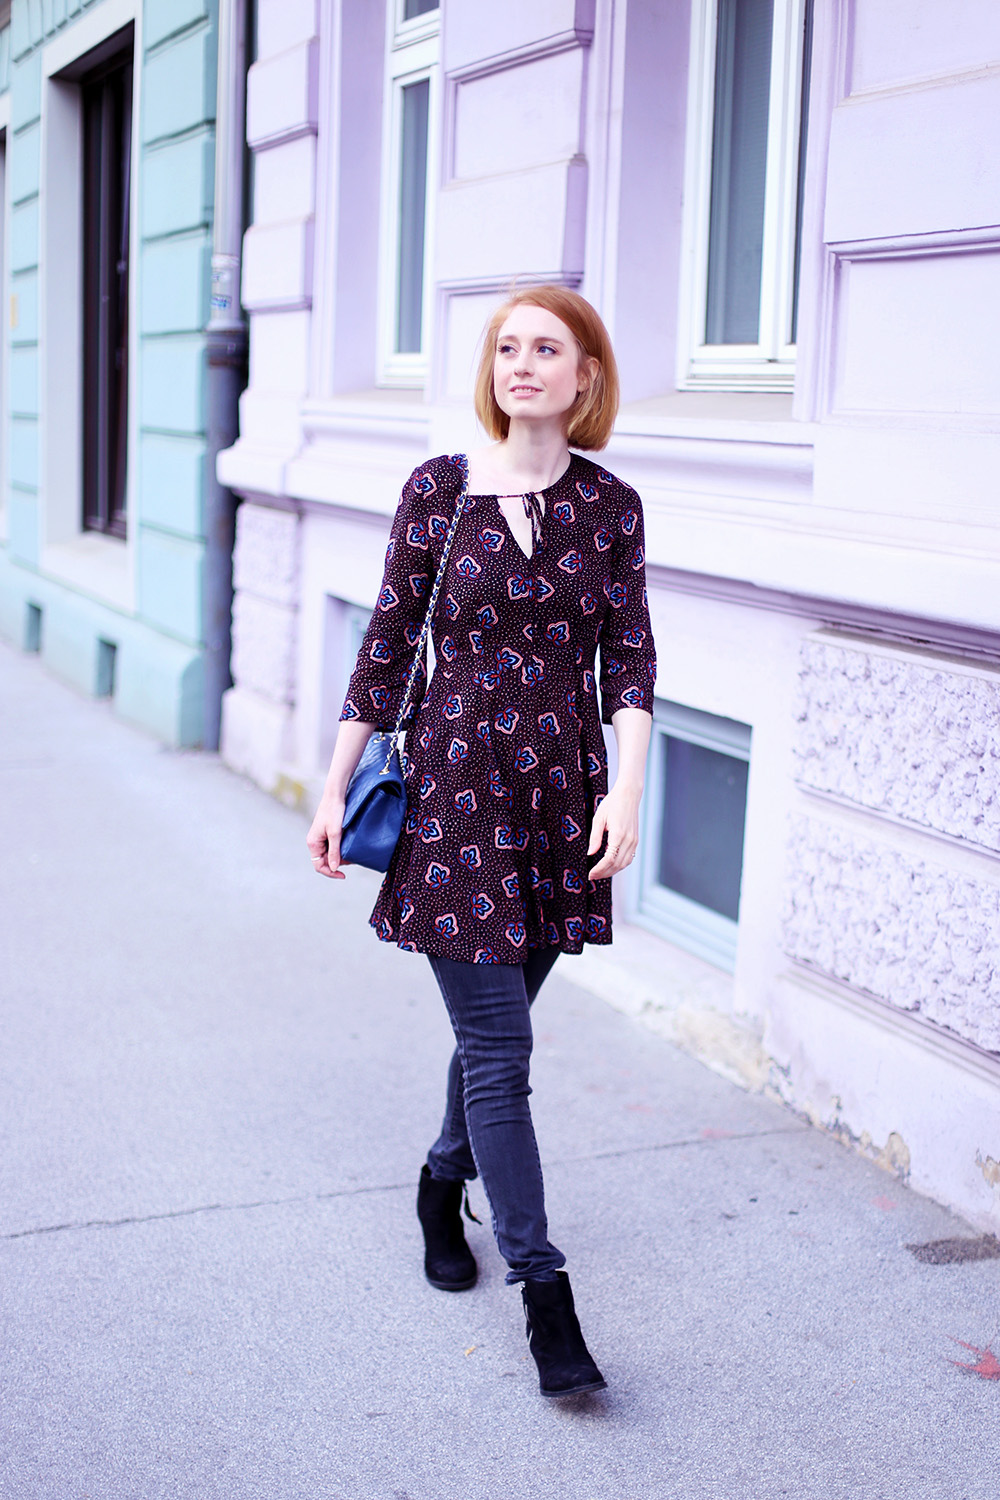 Fruehlingslook, Schwarzes Minikleid, Sommer, Streetstyle Innsbruck, Outfit, Trend, Modetipps, Finde deinen Stil, Influencer, Deutschland, Berlin, Mode Blog, Modeblog, Advance Your Style, advanceyourstyle